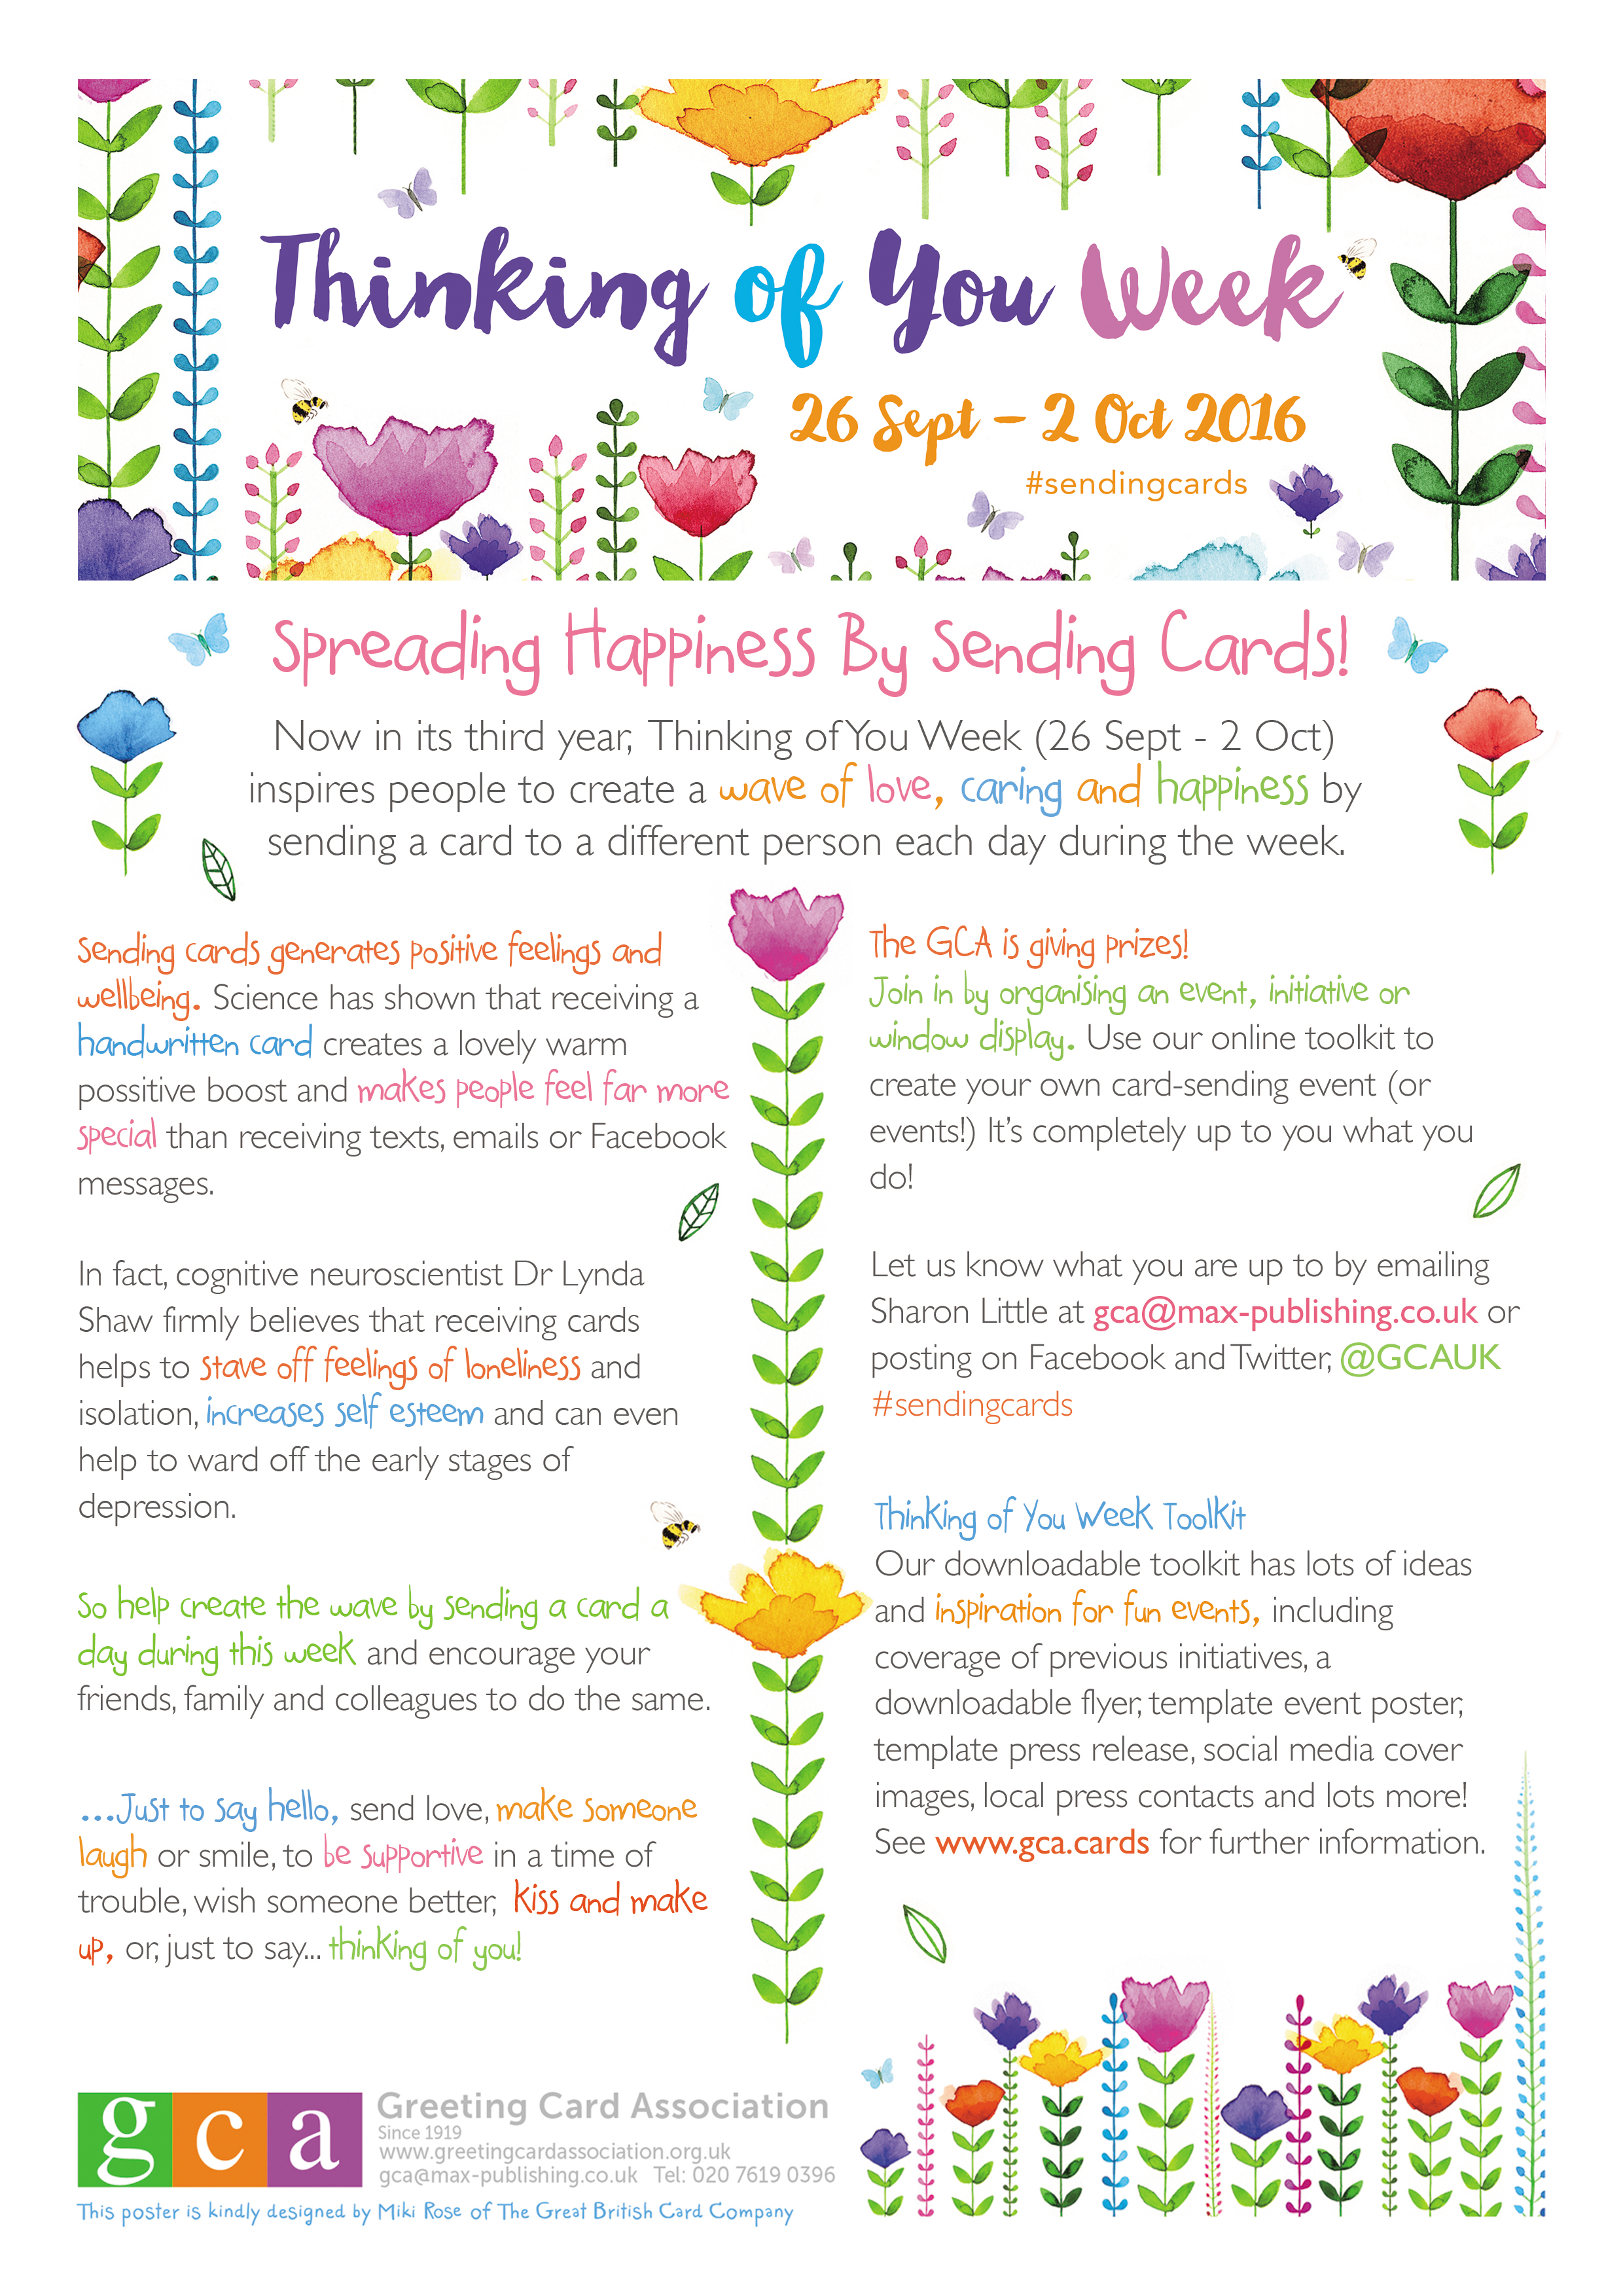 Thinking Of You Week 26 Sept 2 Oct 2016 Spreading Happiness By